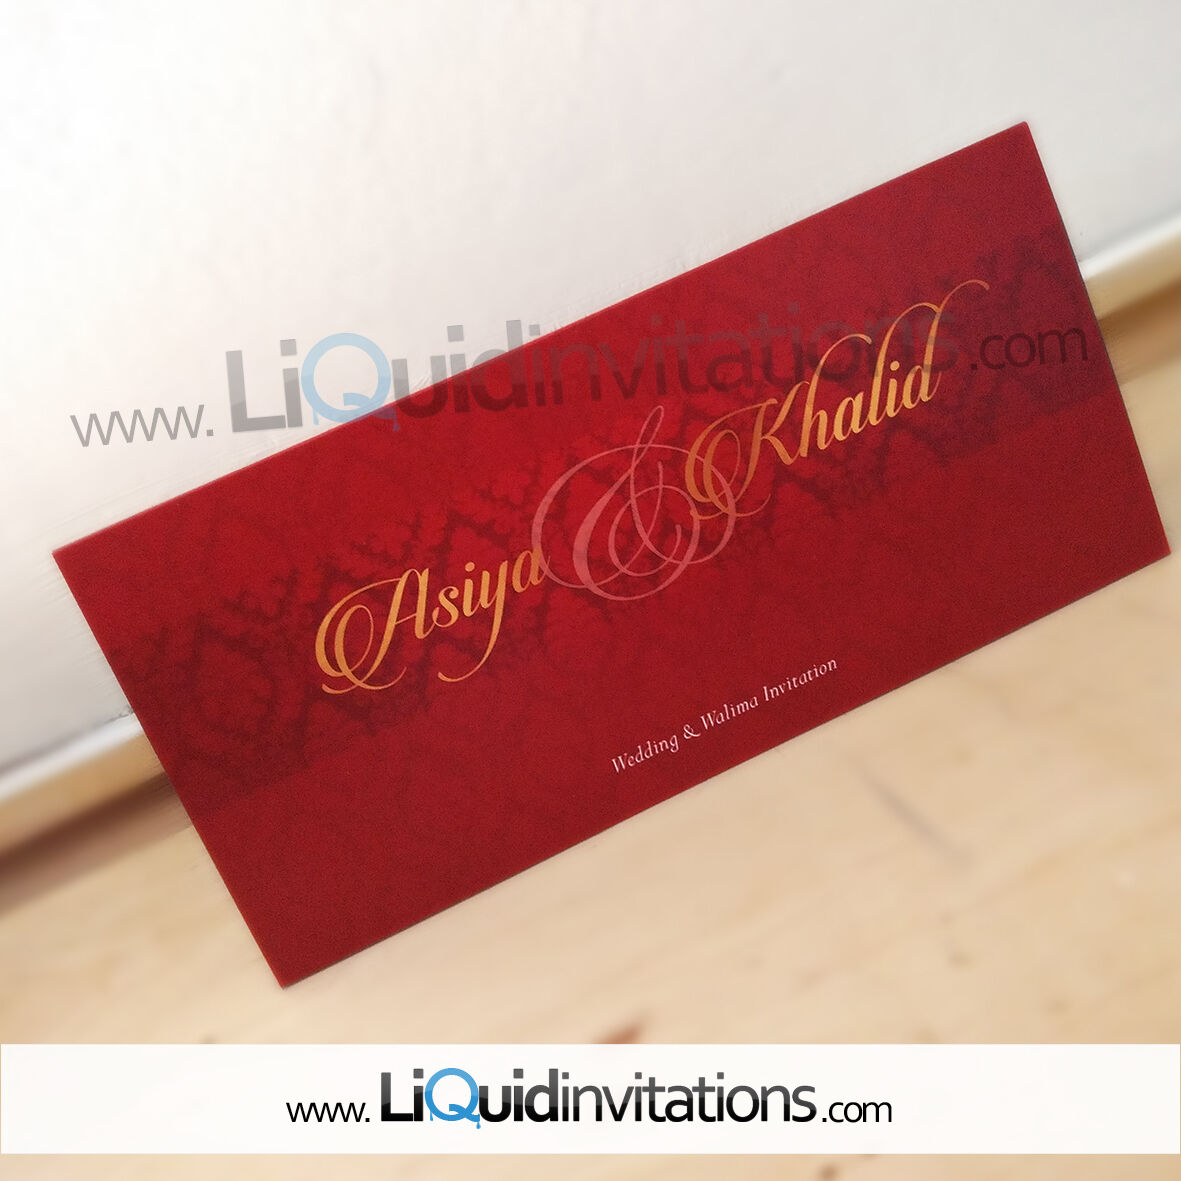 Details About Asian Wedding Card Sample Personalise Indian Sikh Muslim Hindu